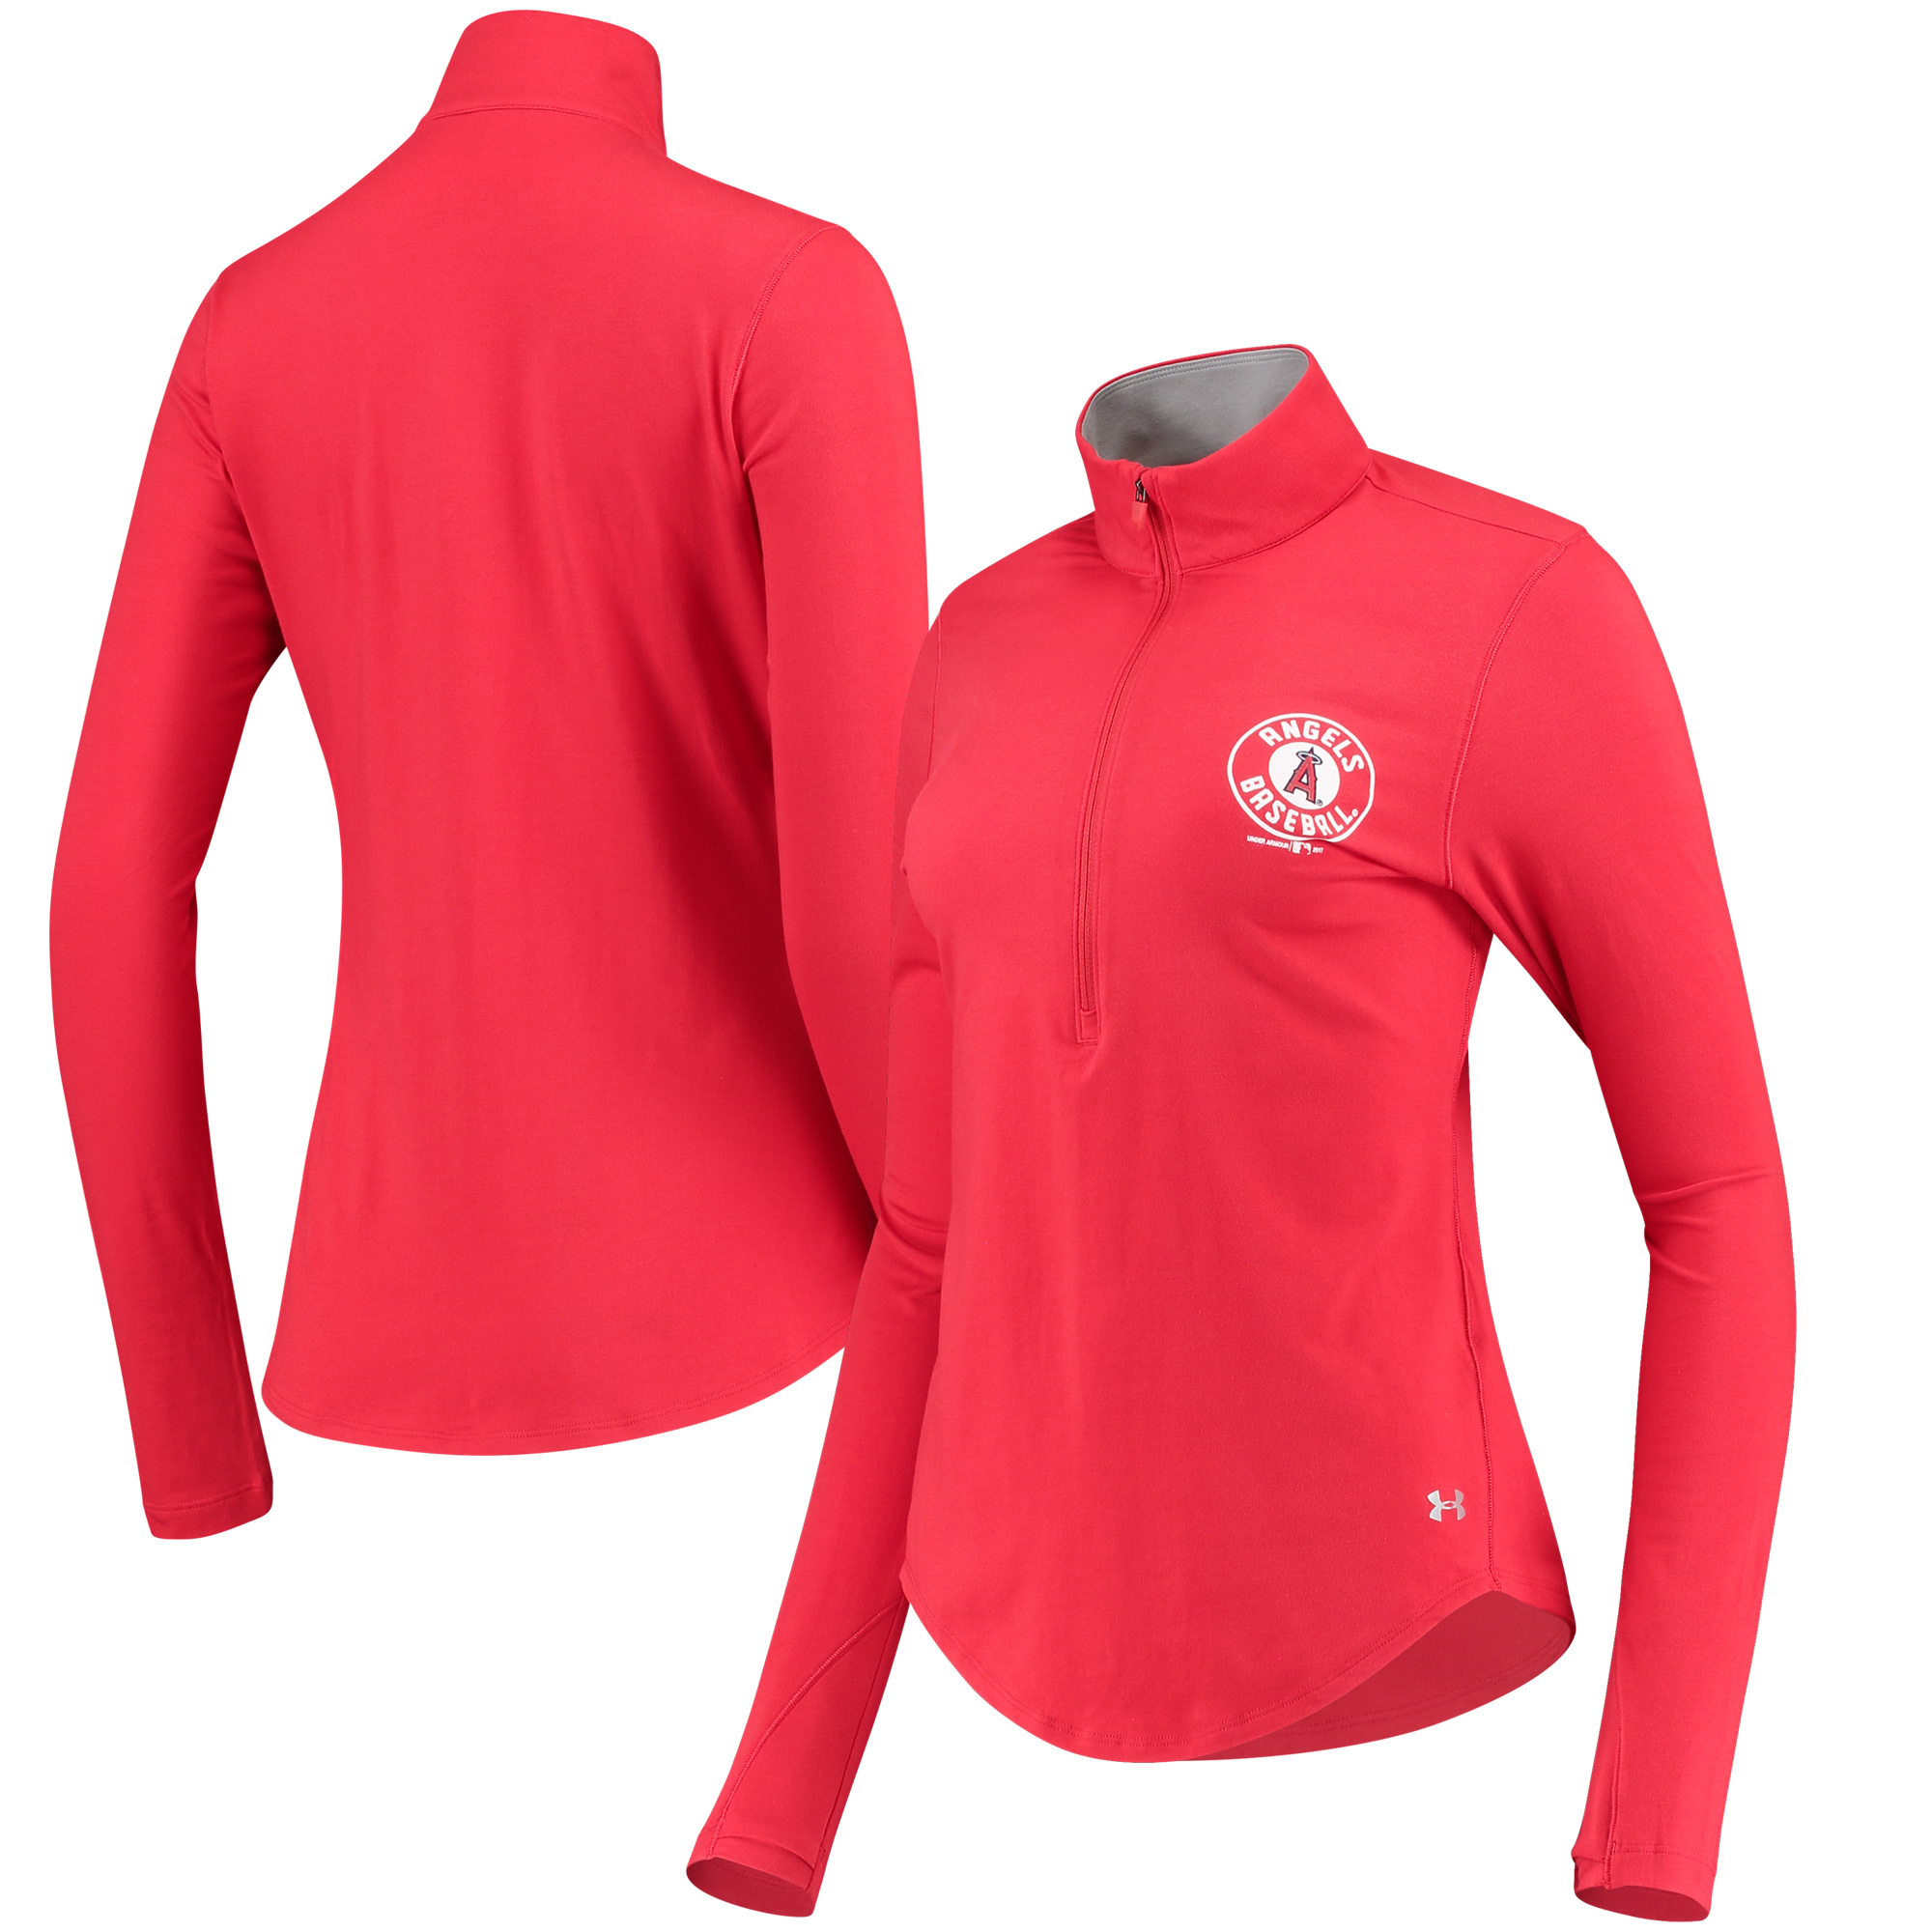 Los Angeles Angels Under Armour Women's Charged Cotton Half-Zip Pullover Jacket - Red